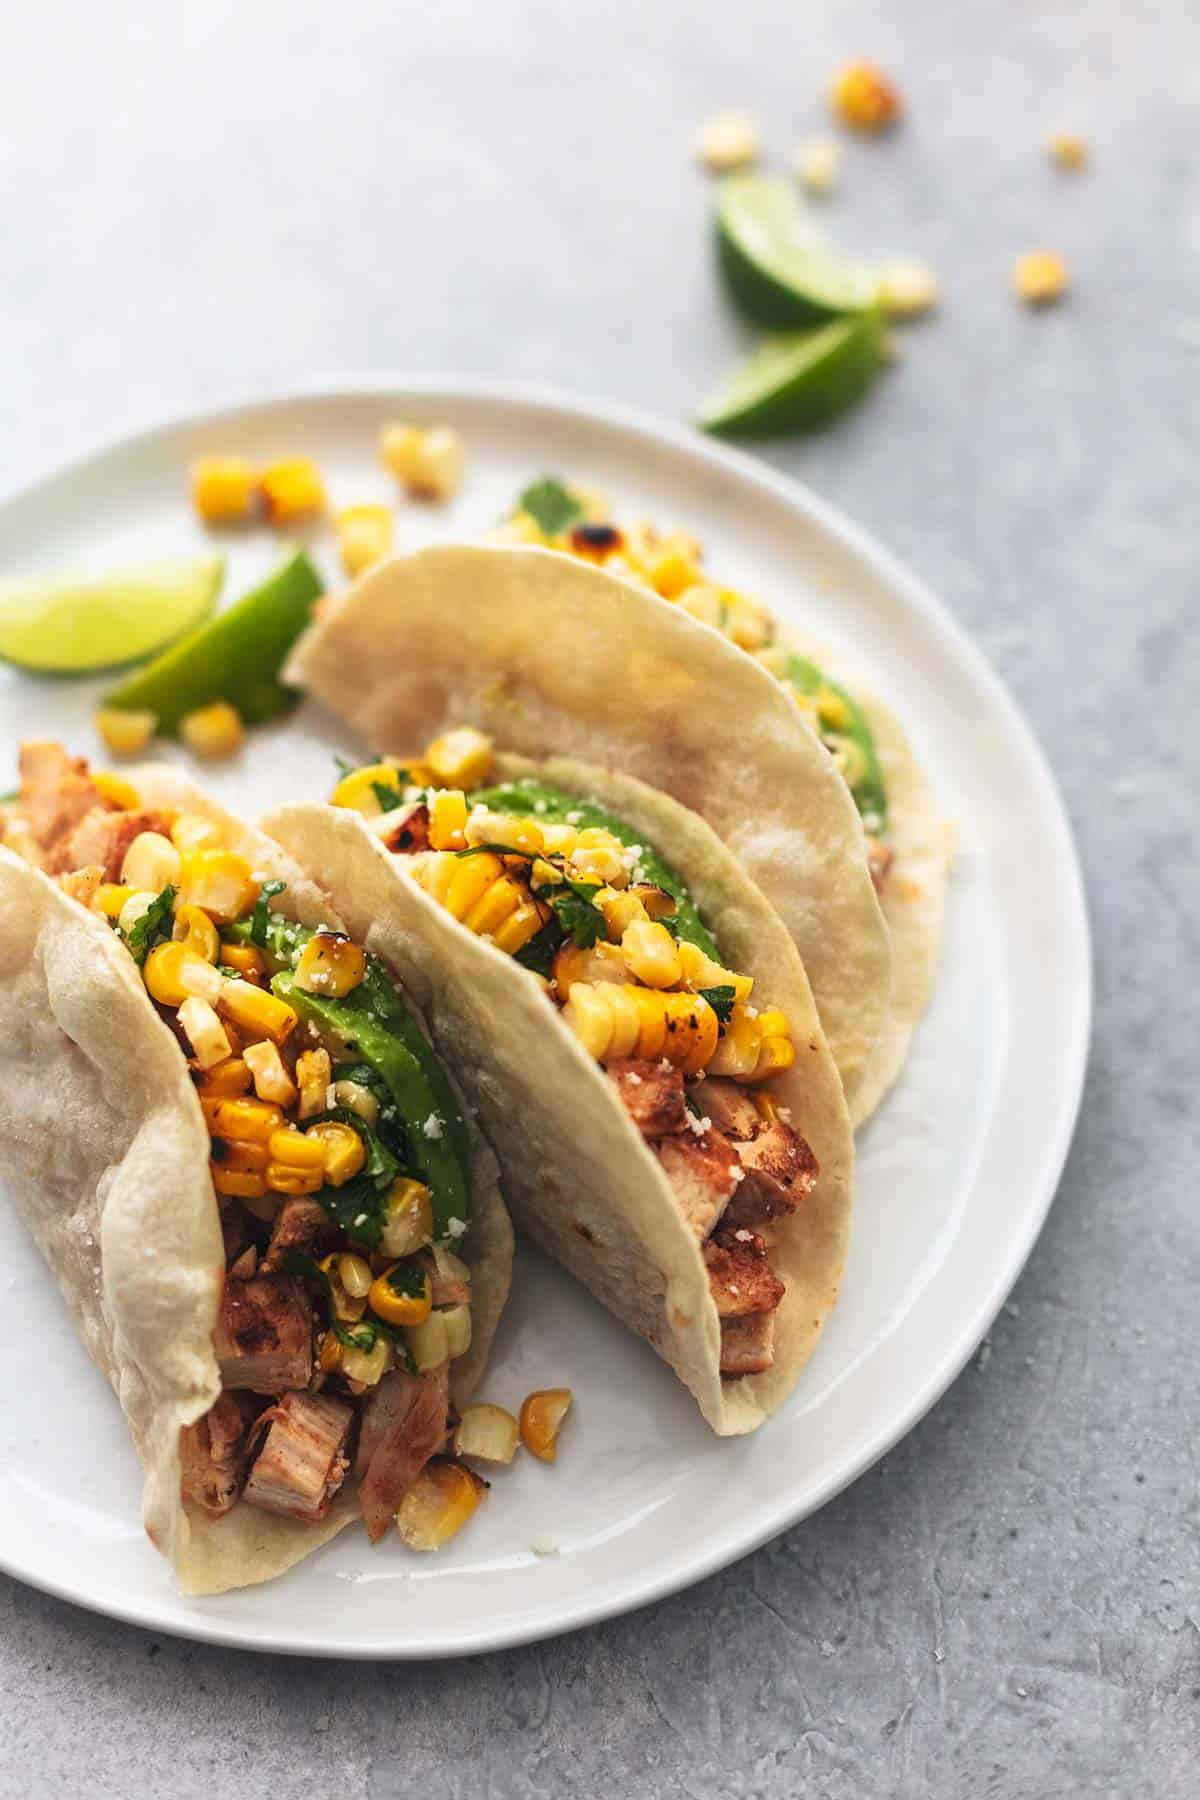 three tortillas filled with avocado, diced chicken, and corn salsa on white plate with limes